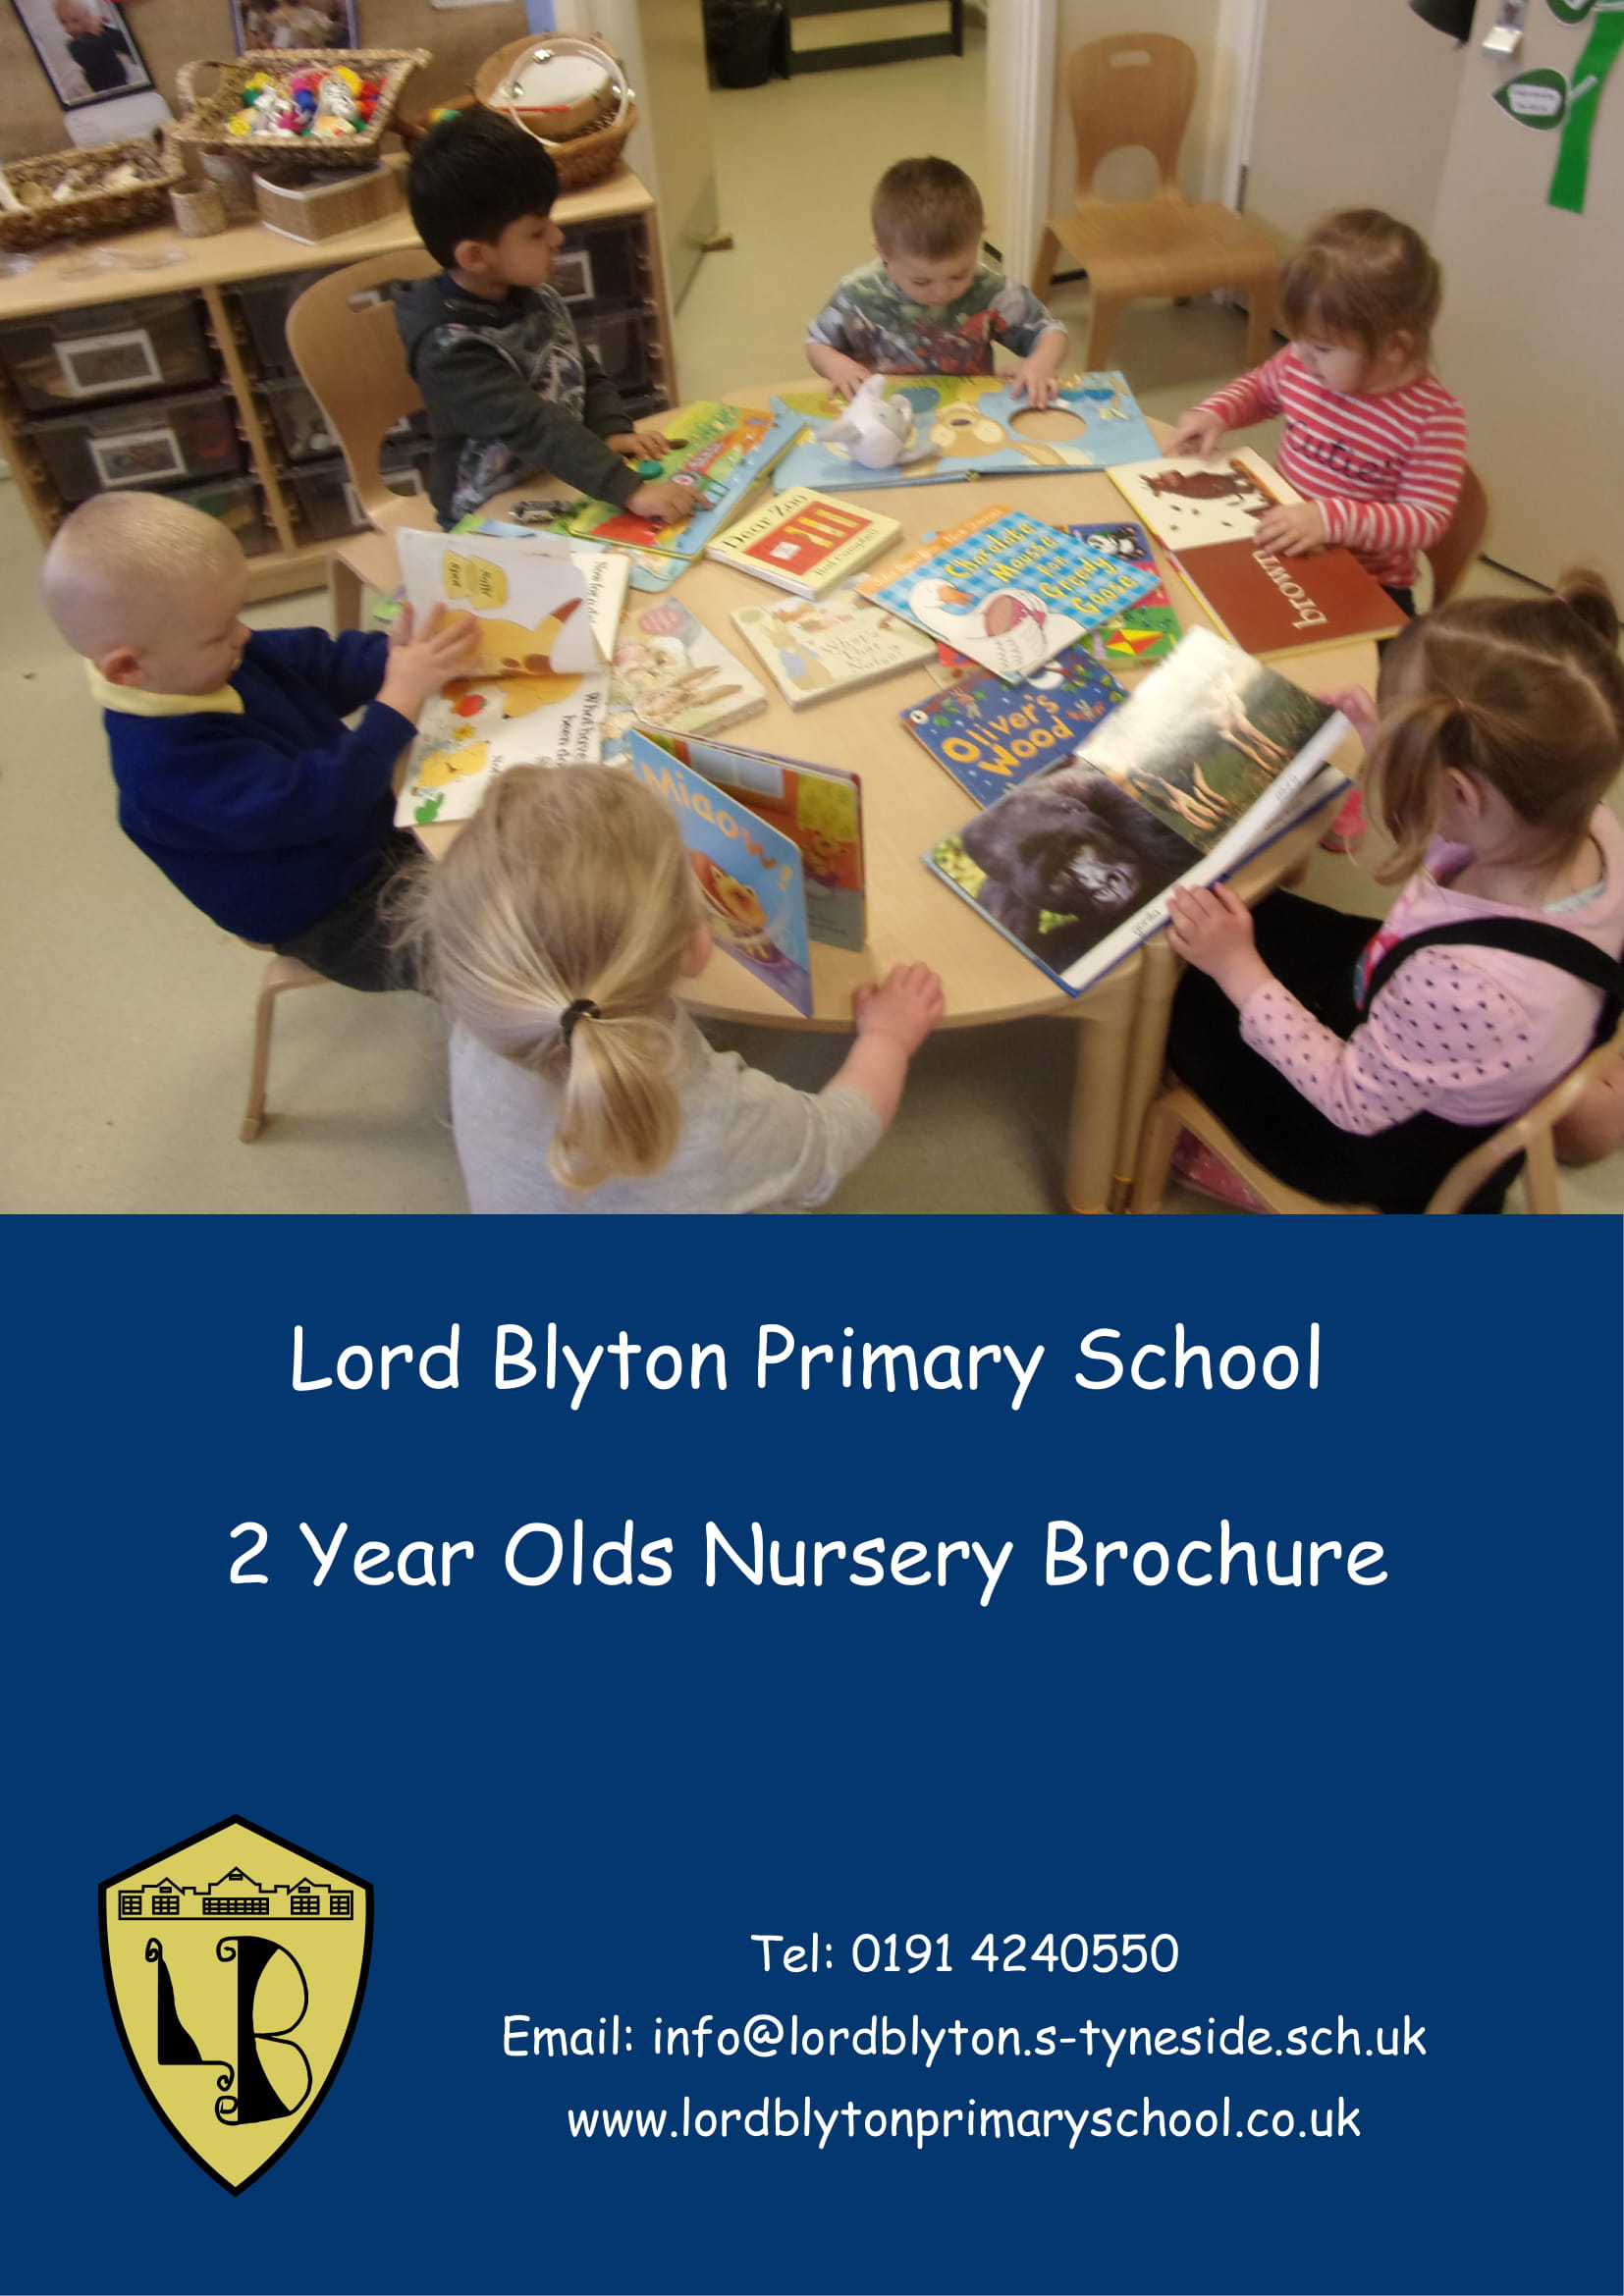 2 Year Old's Nursery Brochure